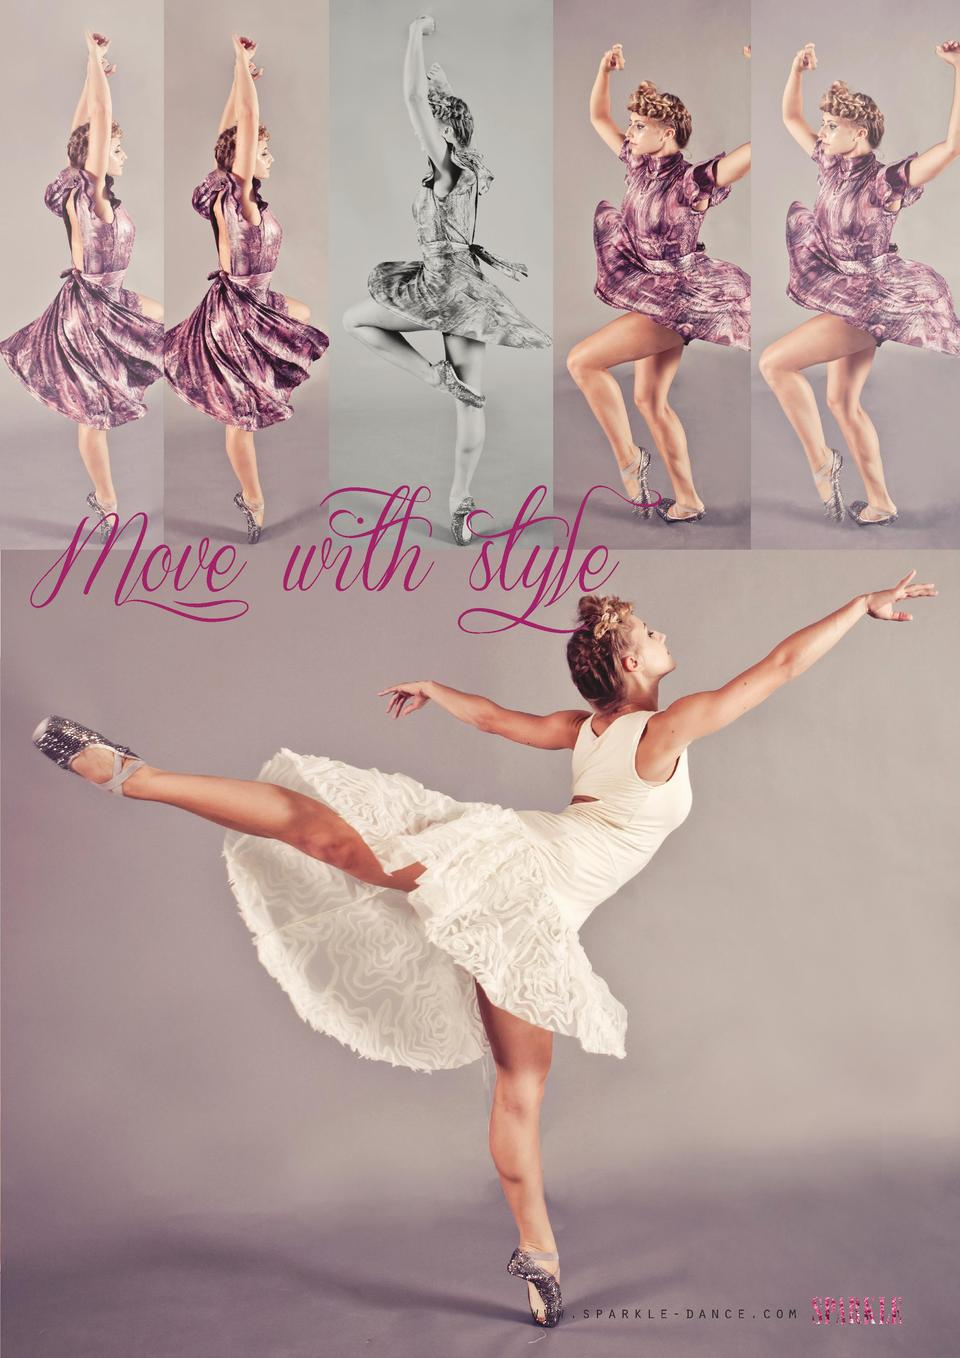 Move with style  www.sparkle-dance.com